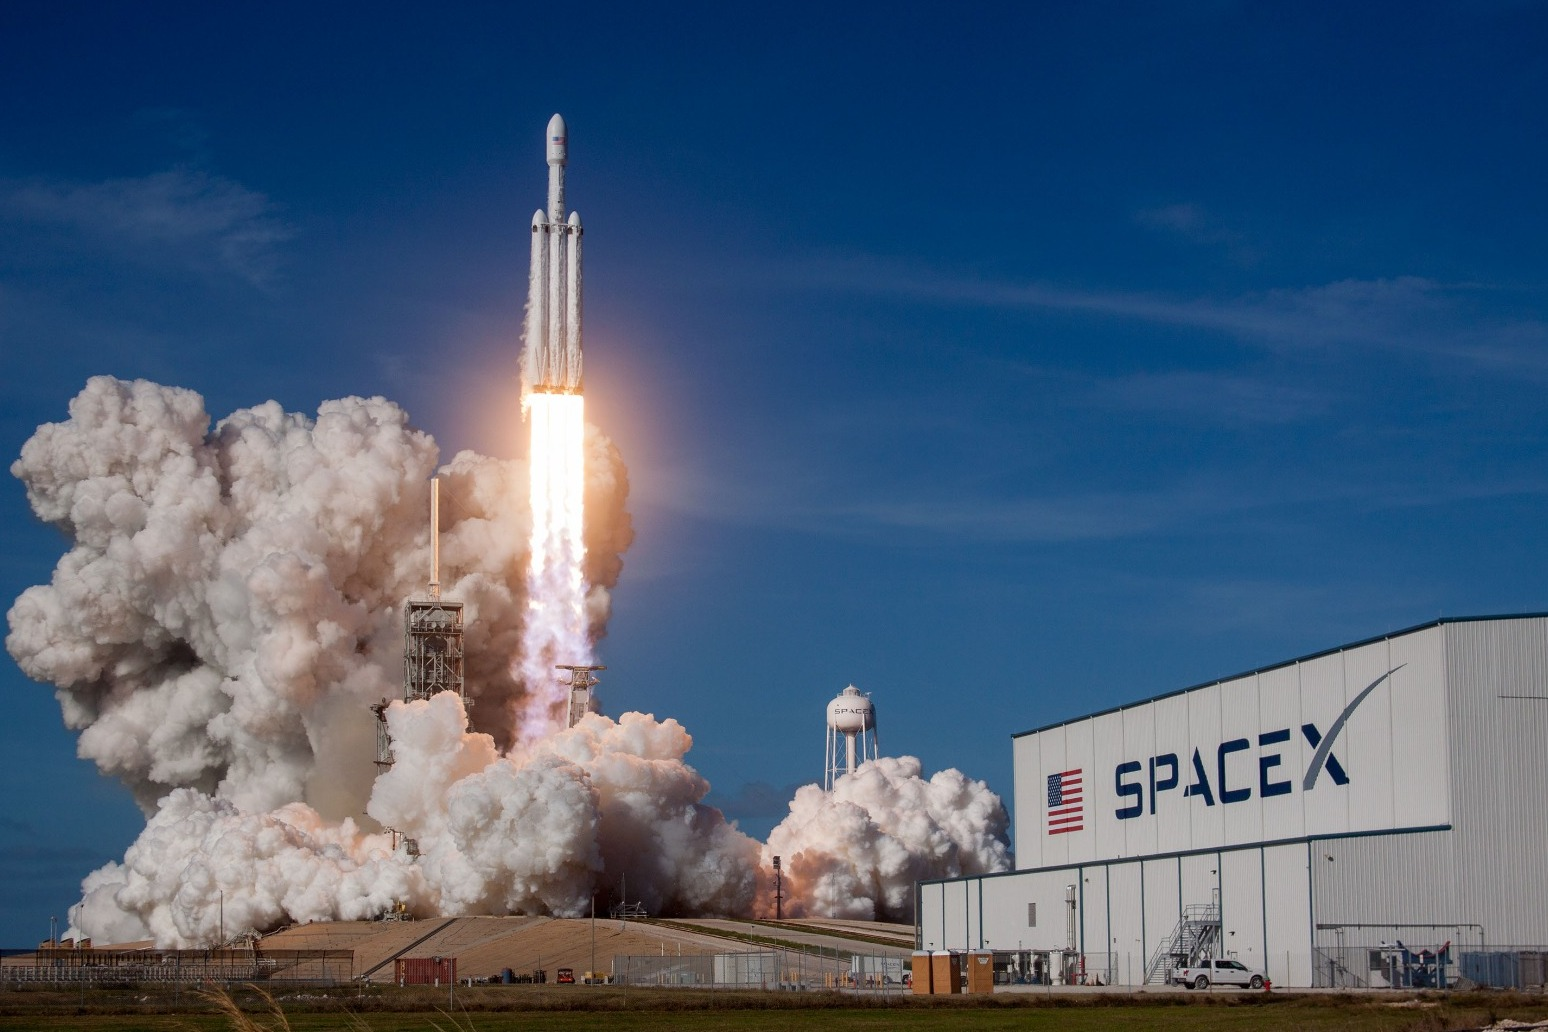 SpaceX\'s Falcon Heavy rocket soars in debut test launch from Florida